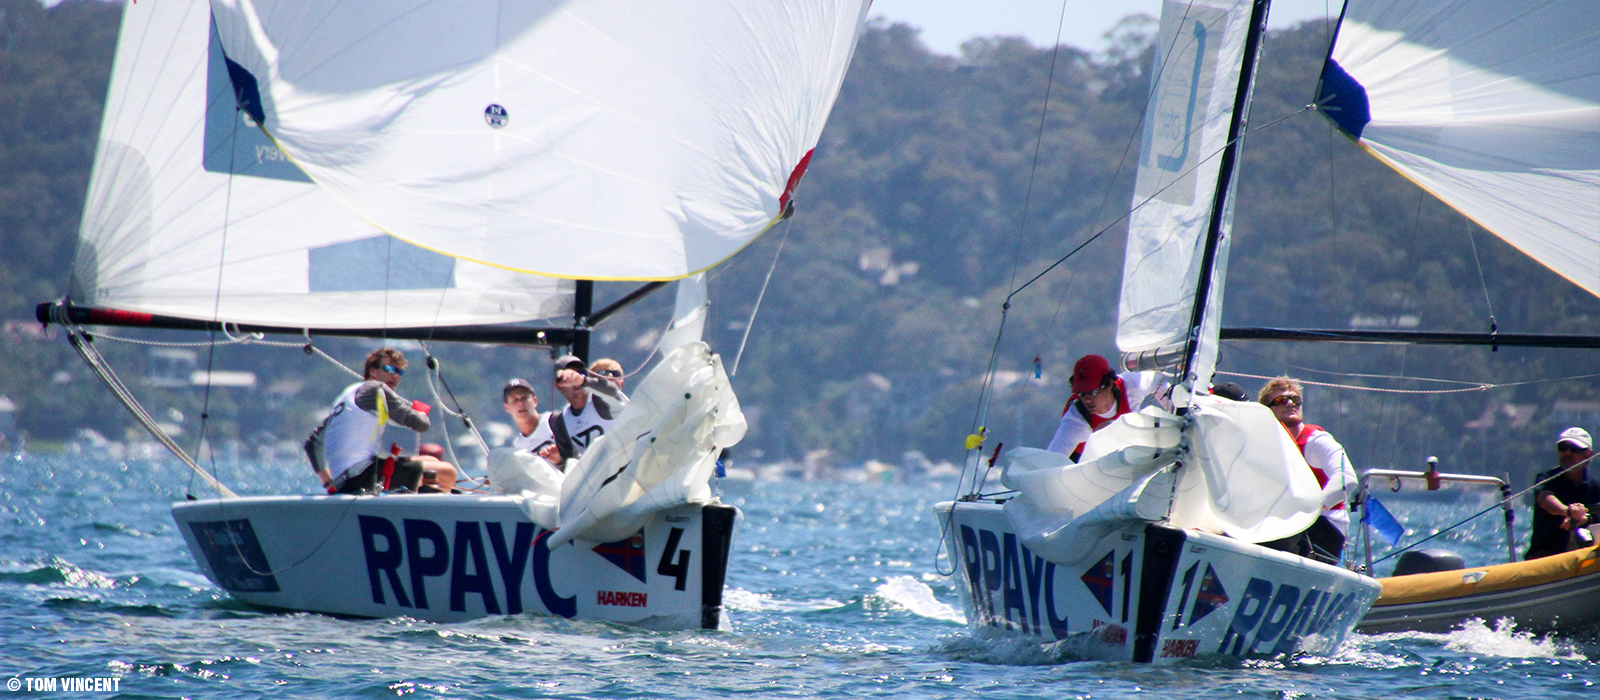 "26th HARKEN INTERNATIONAL YOUTH MATCH RACING CHAMPIONSHIP - ""The Harken"" as it's known stands out as one of the premier events for up and coming sailors on the international match racing calendar. Racing for the Rockin' Robin Trophy begins on November 22nd at the Royal Prince Alfred Yacht Club in Sydney, Australia."